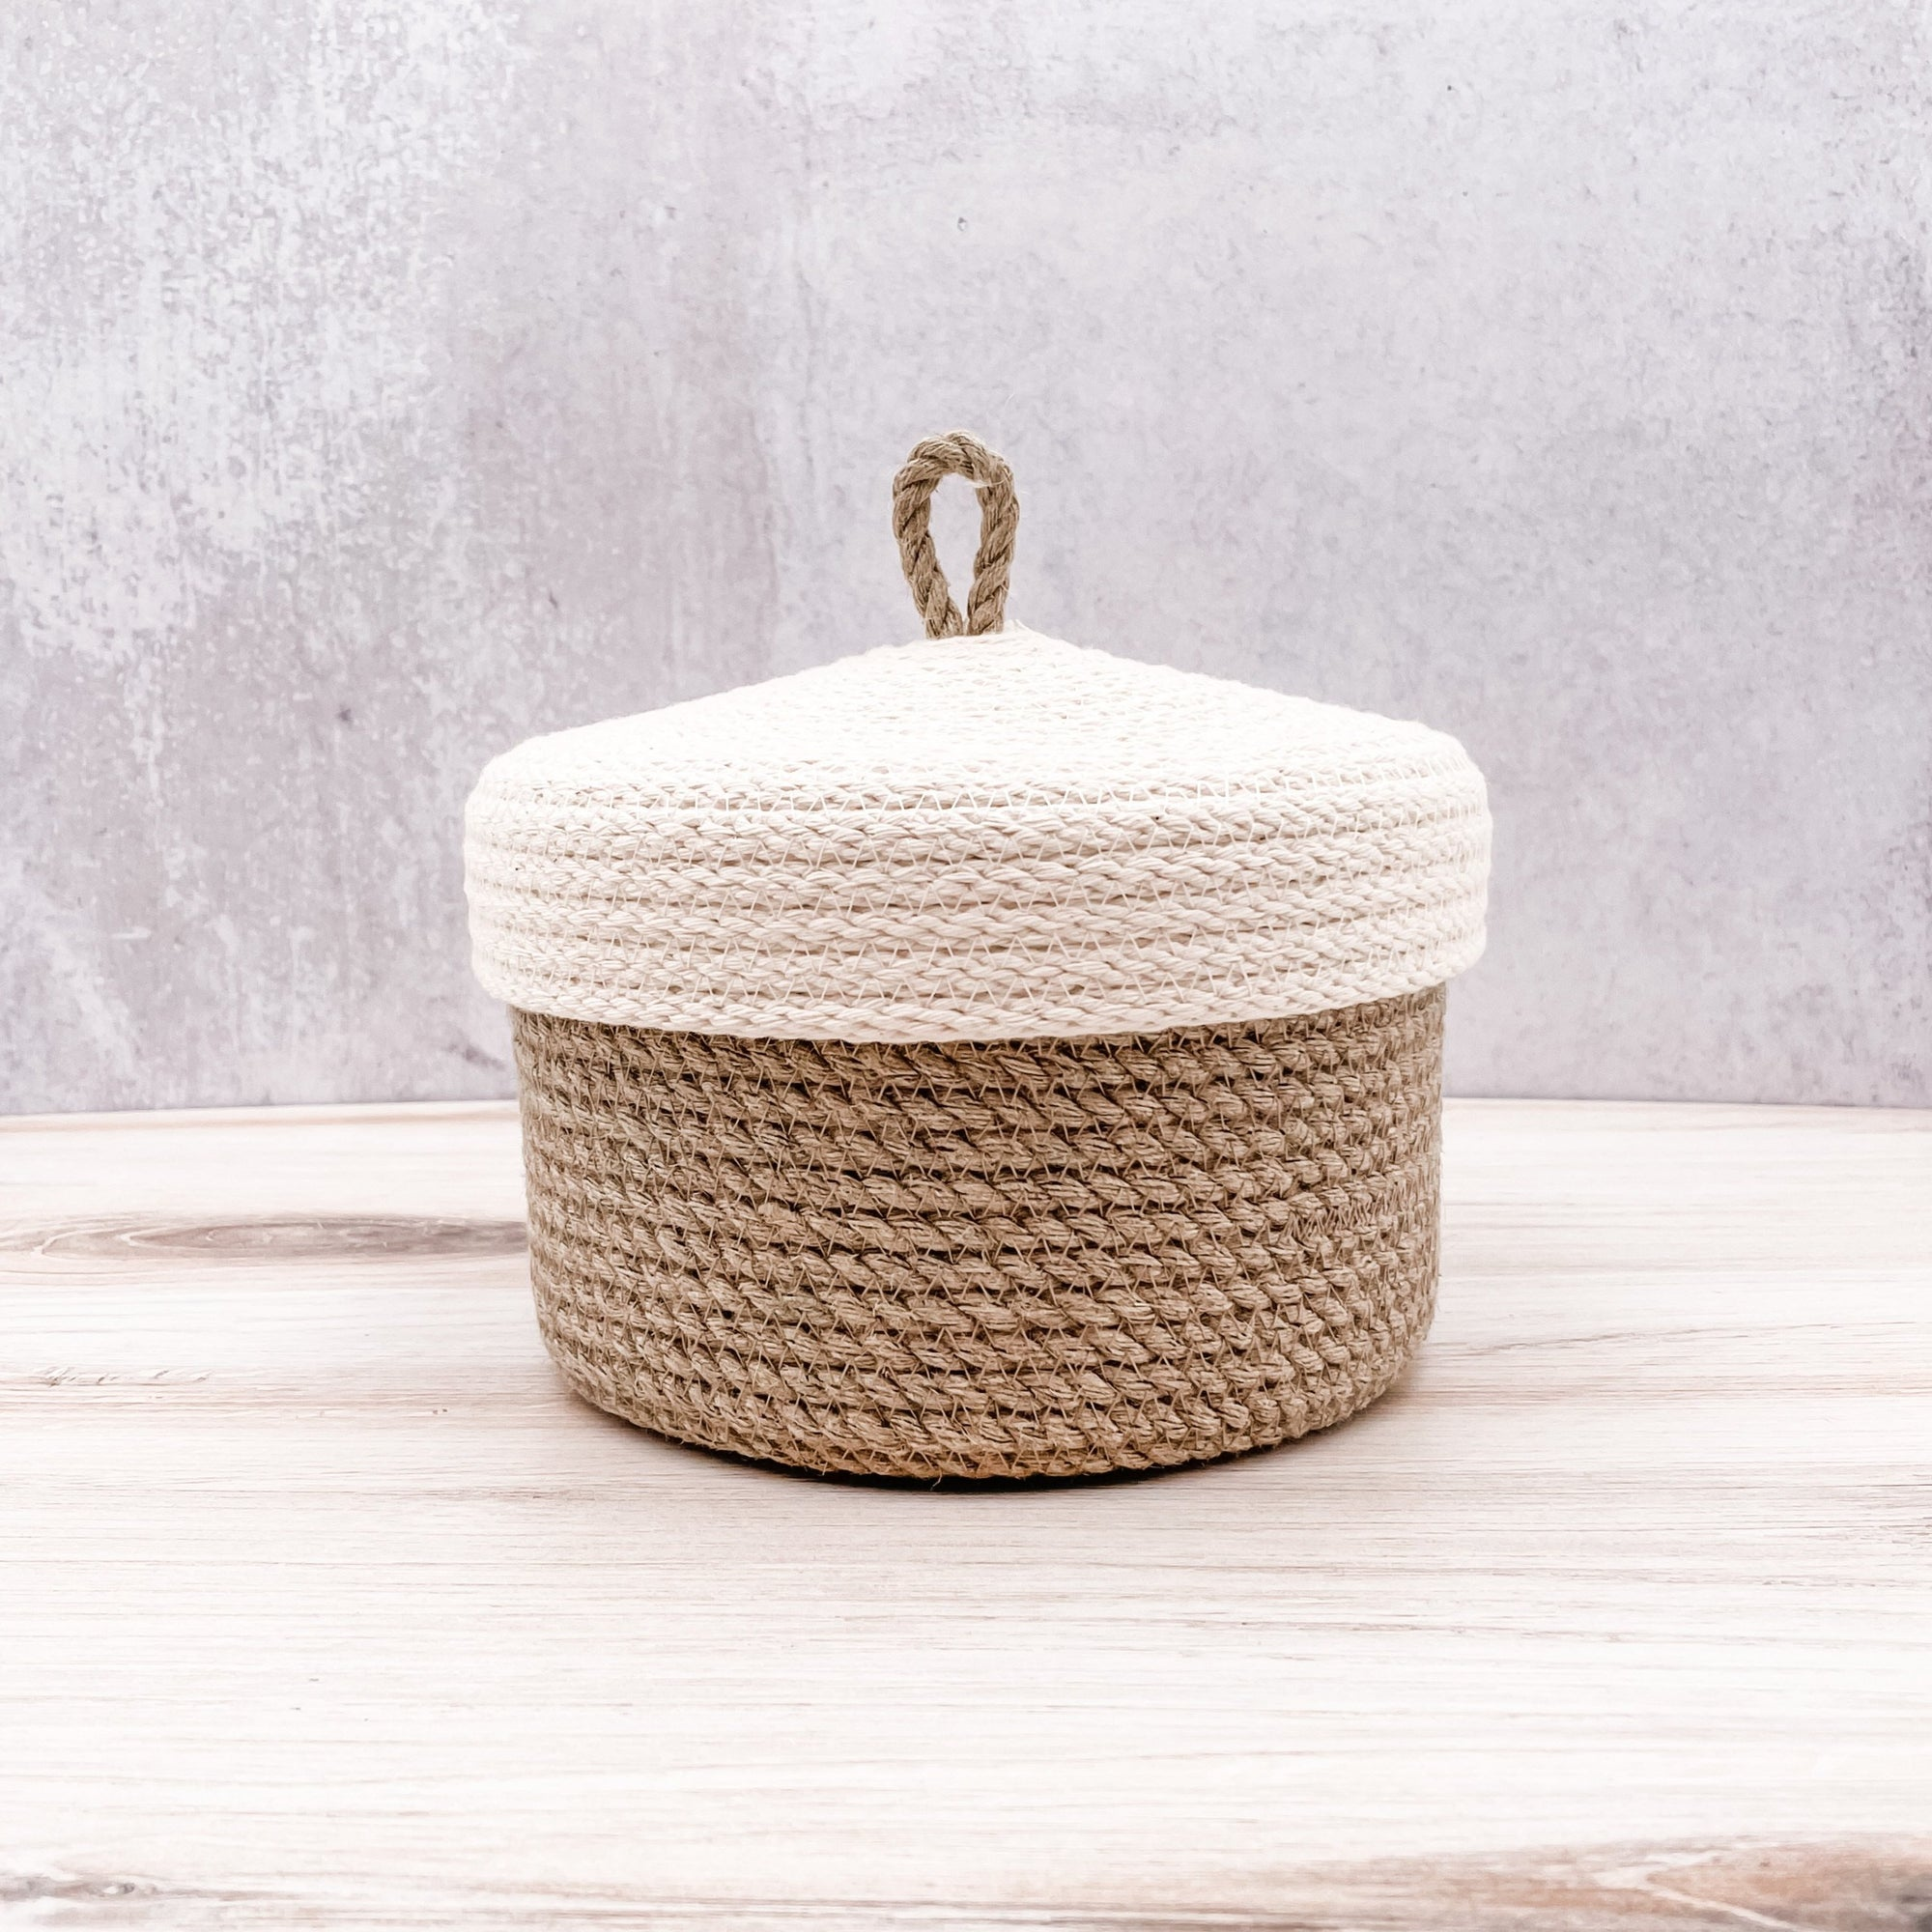 Lid basket with hemp base